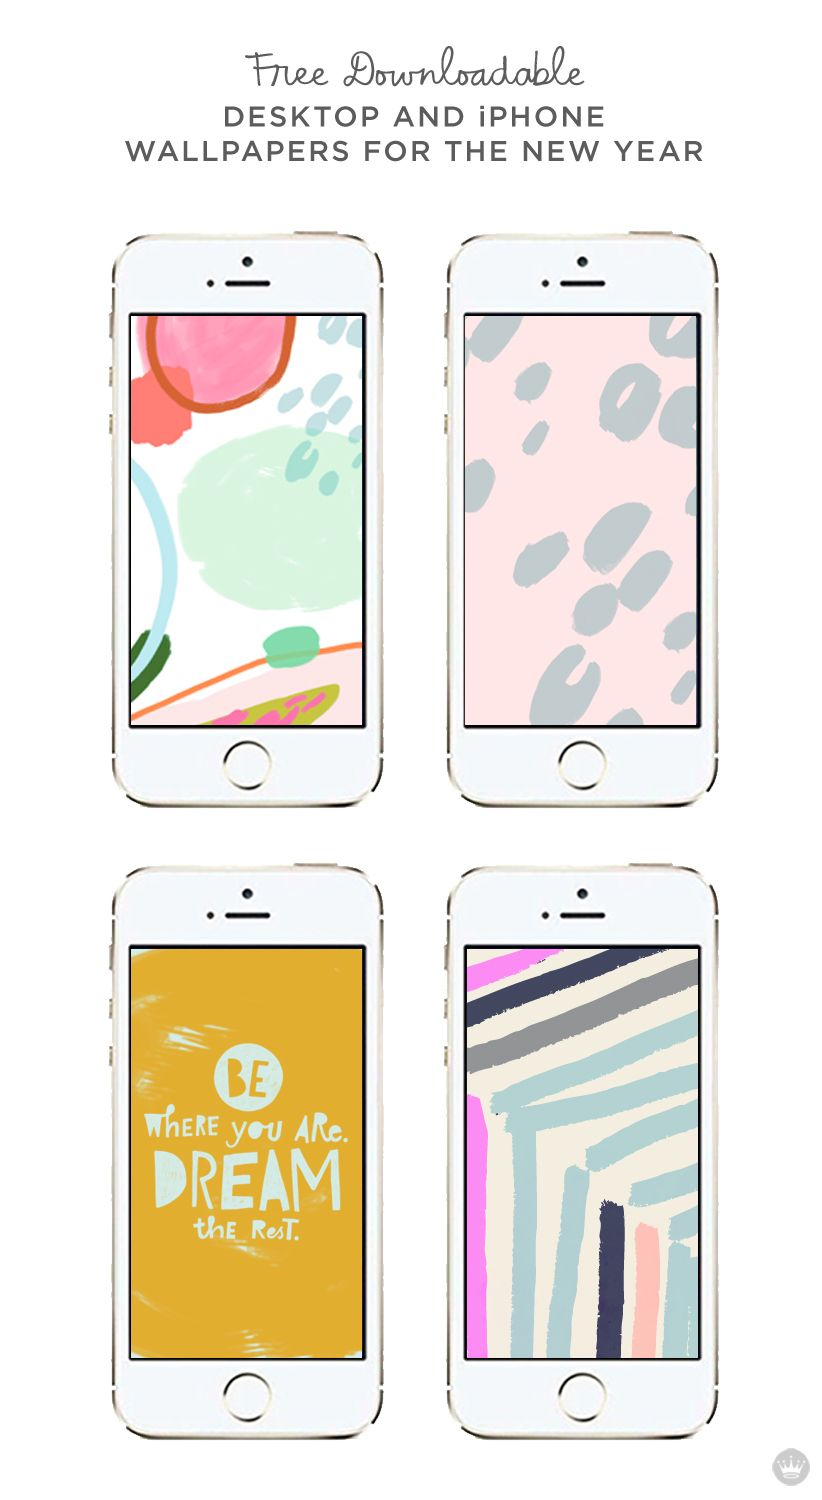 Free Downloadable Desktop And Iphone Wallpapers To Kick Off The New Year    Thinkmakeshareblog.com